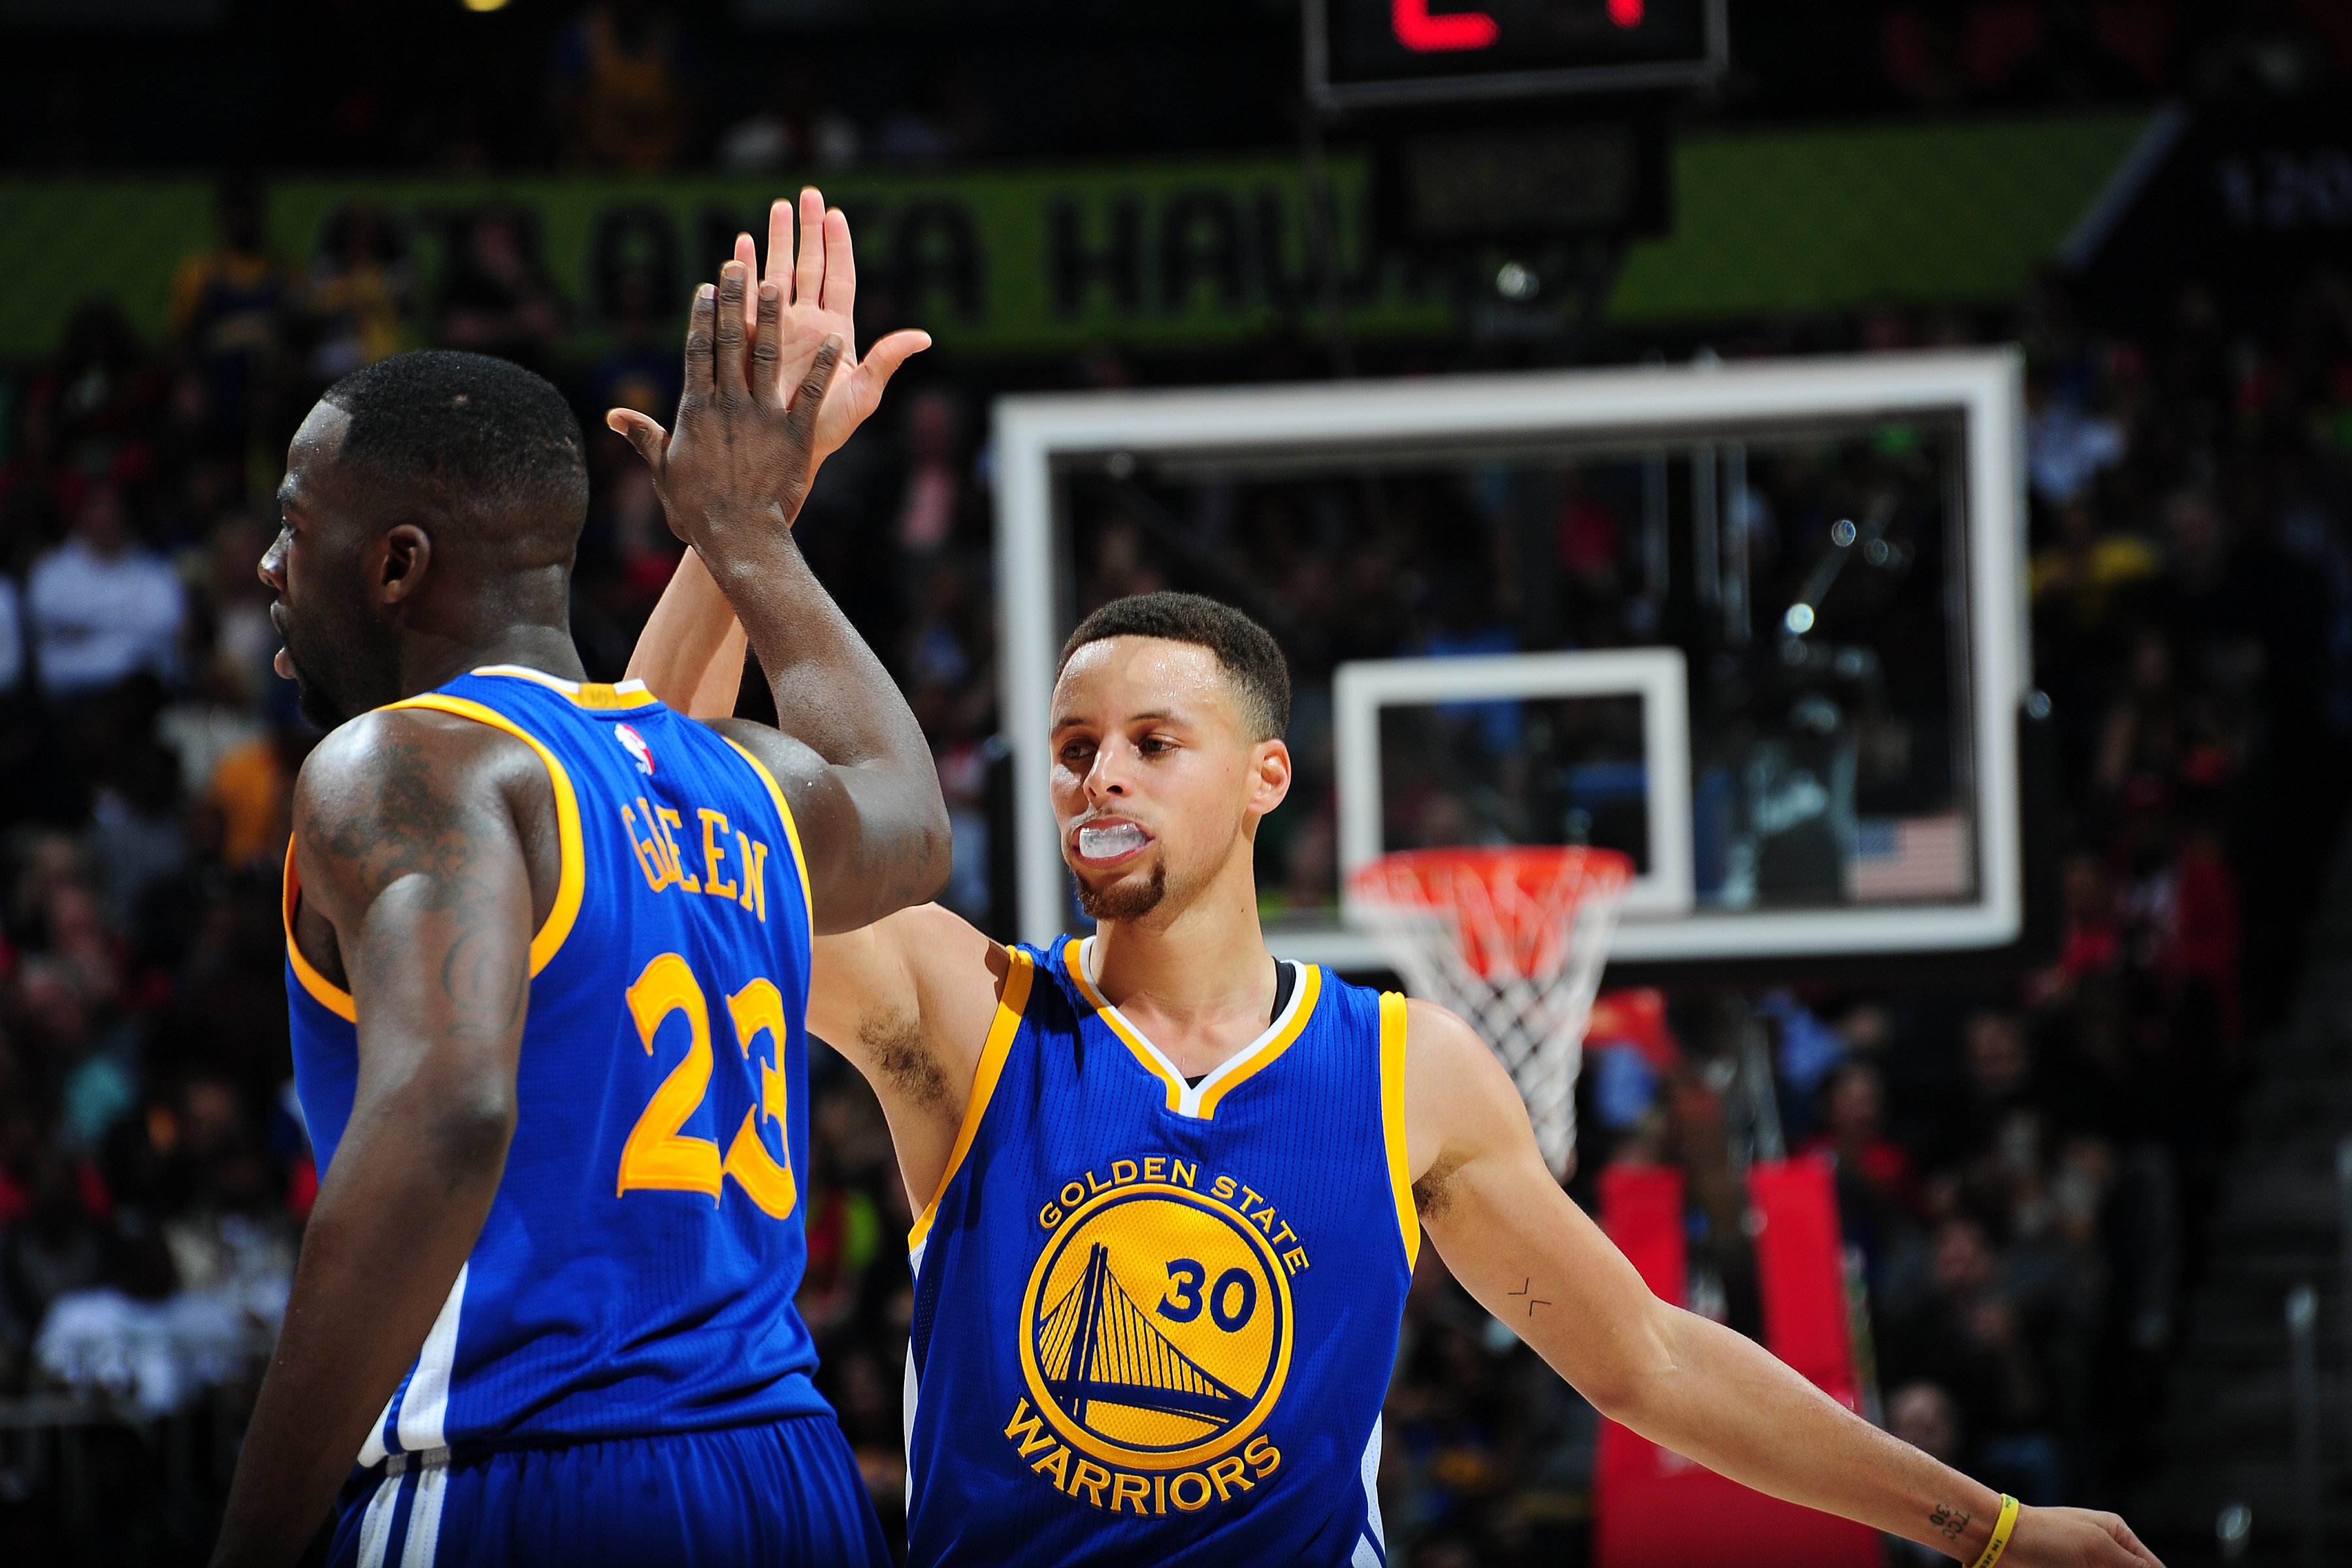 ATLANTA, GA - FEBRUARY 22:  Stephen Curry #30 of the Golden State Warriors shakes hands with Draymond Green #23 of the Golden State Warriors during the game against the Atlanta Hawks on February 22, 2016 at Philips Center in Atlanta, Georgia.  (Photo by S